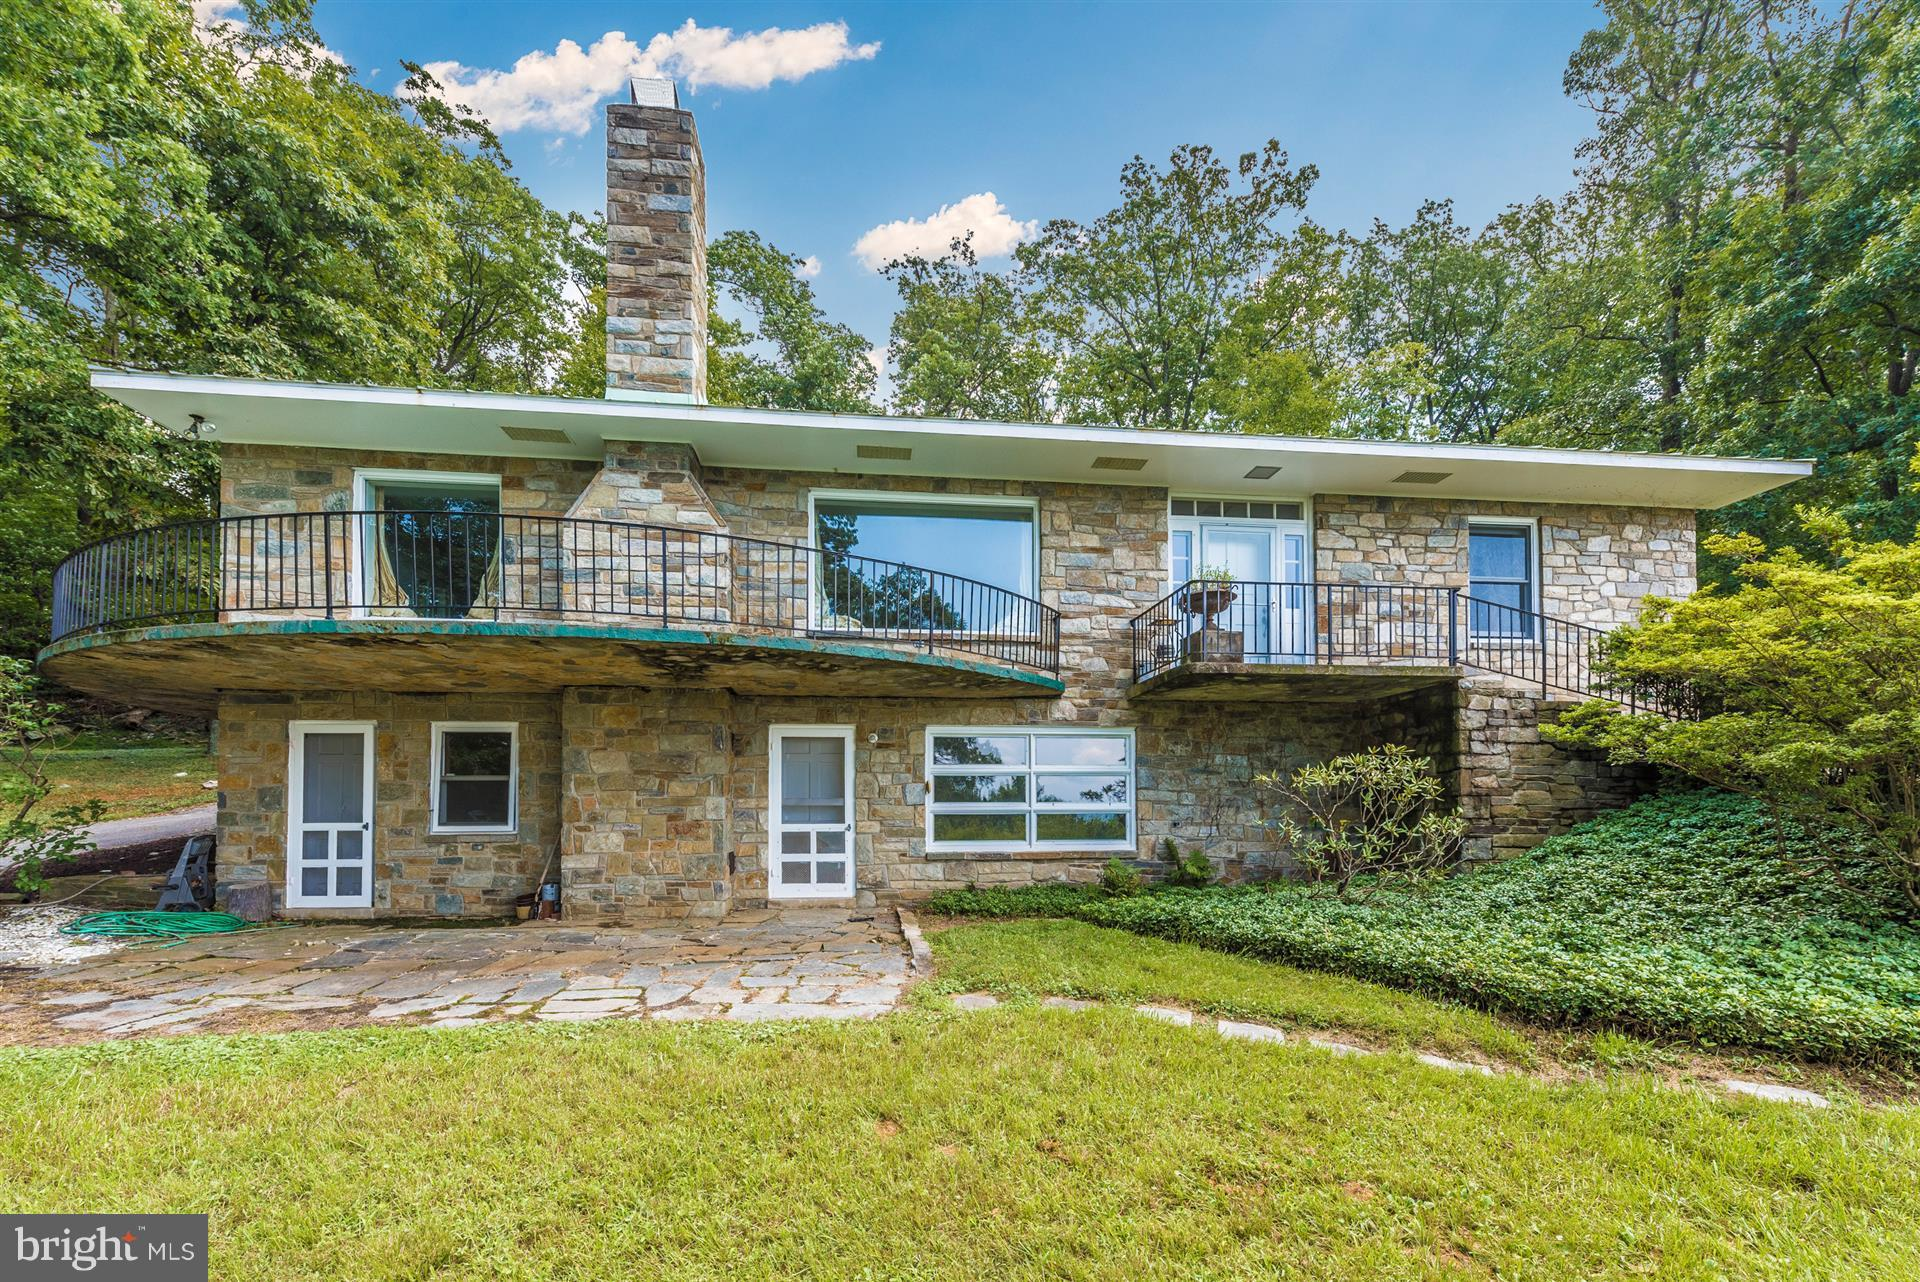 3455 MAR-LU-RIDGE ROAD, JEFFERSON, MD 21755